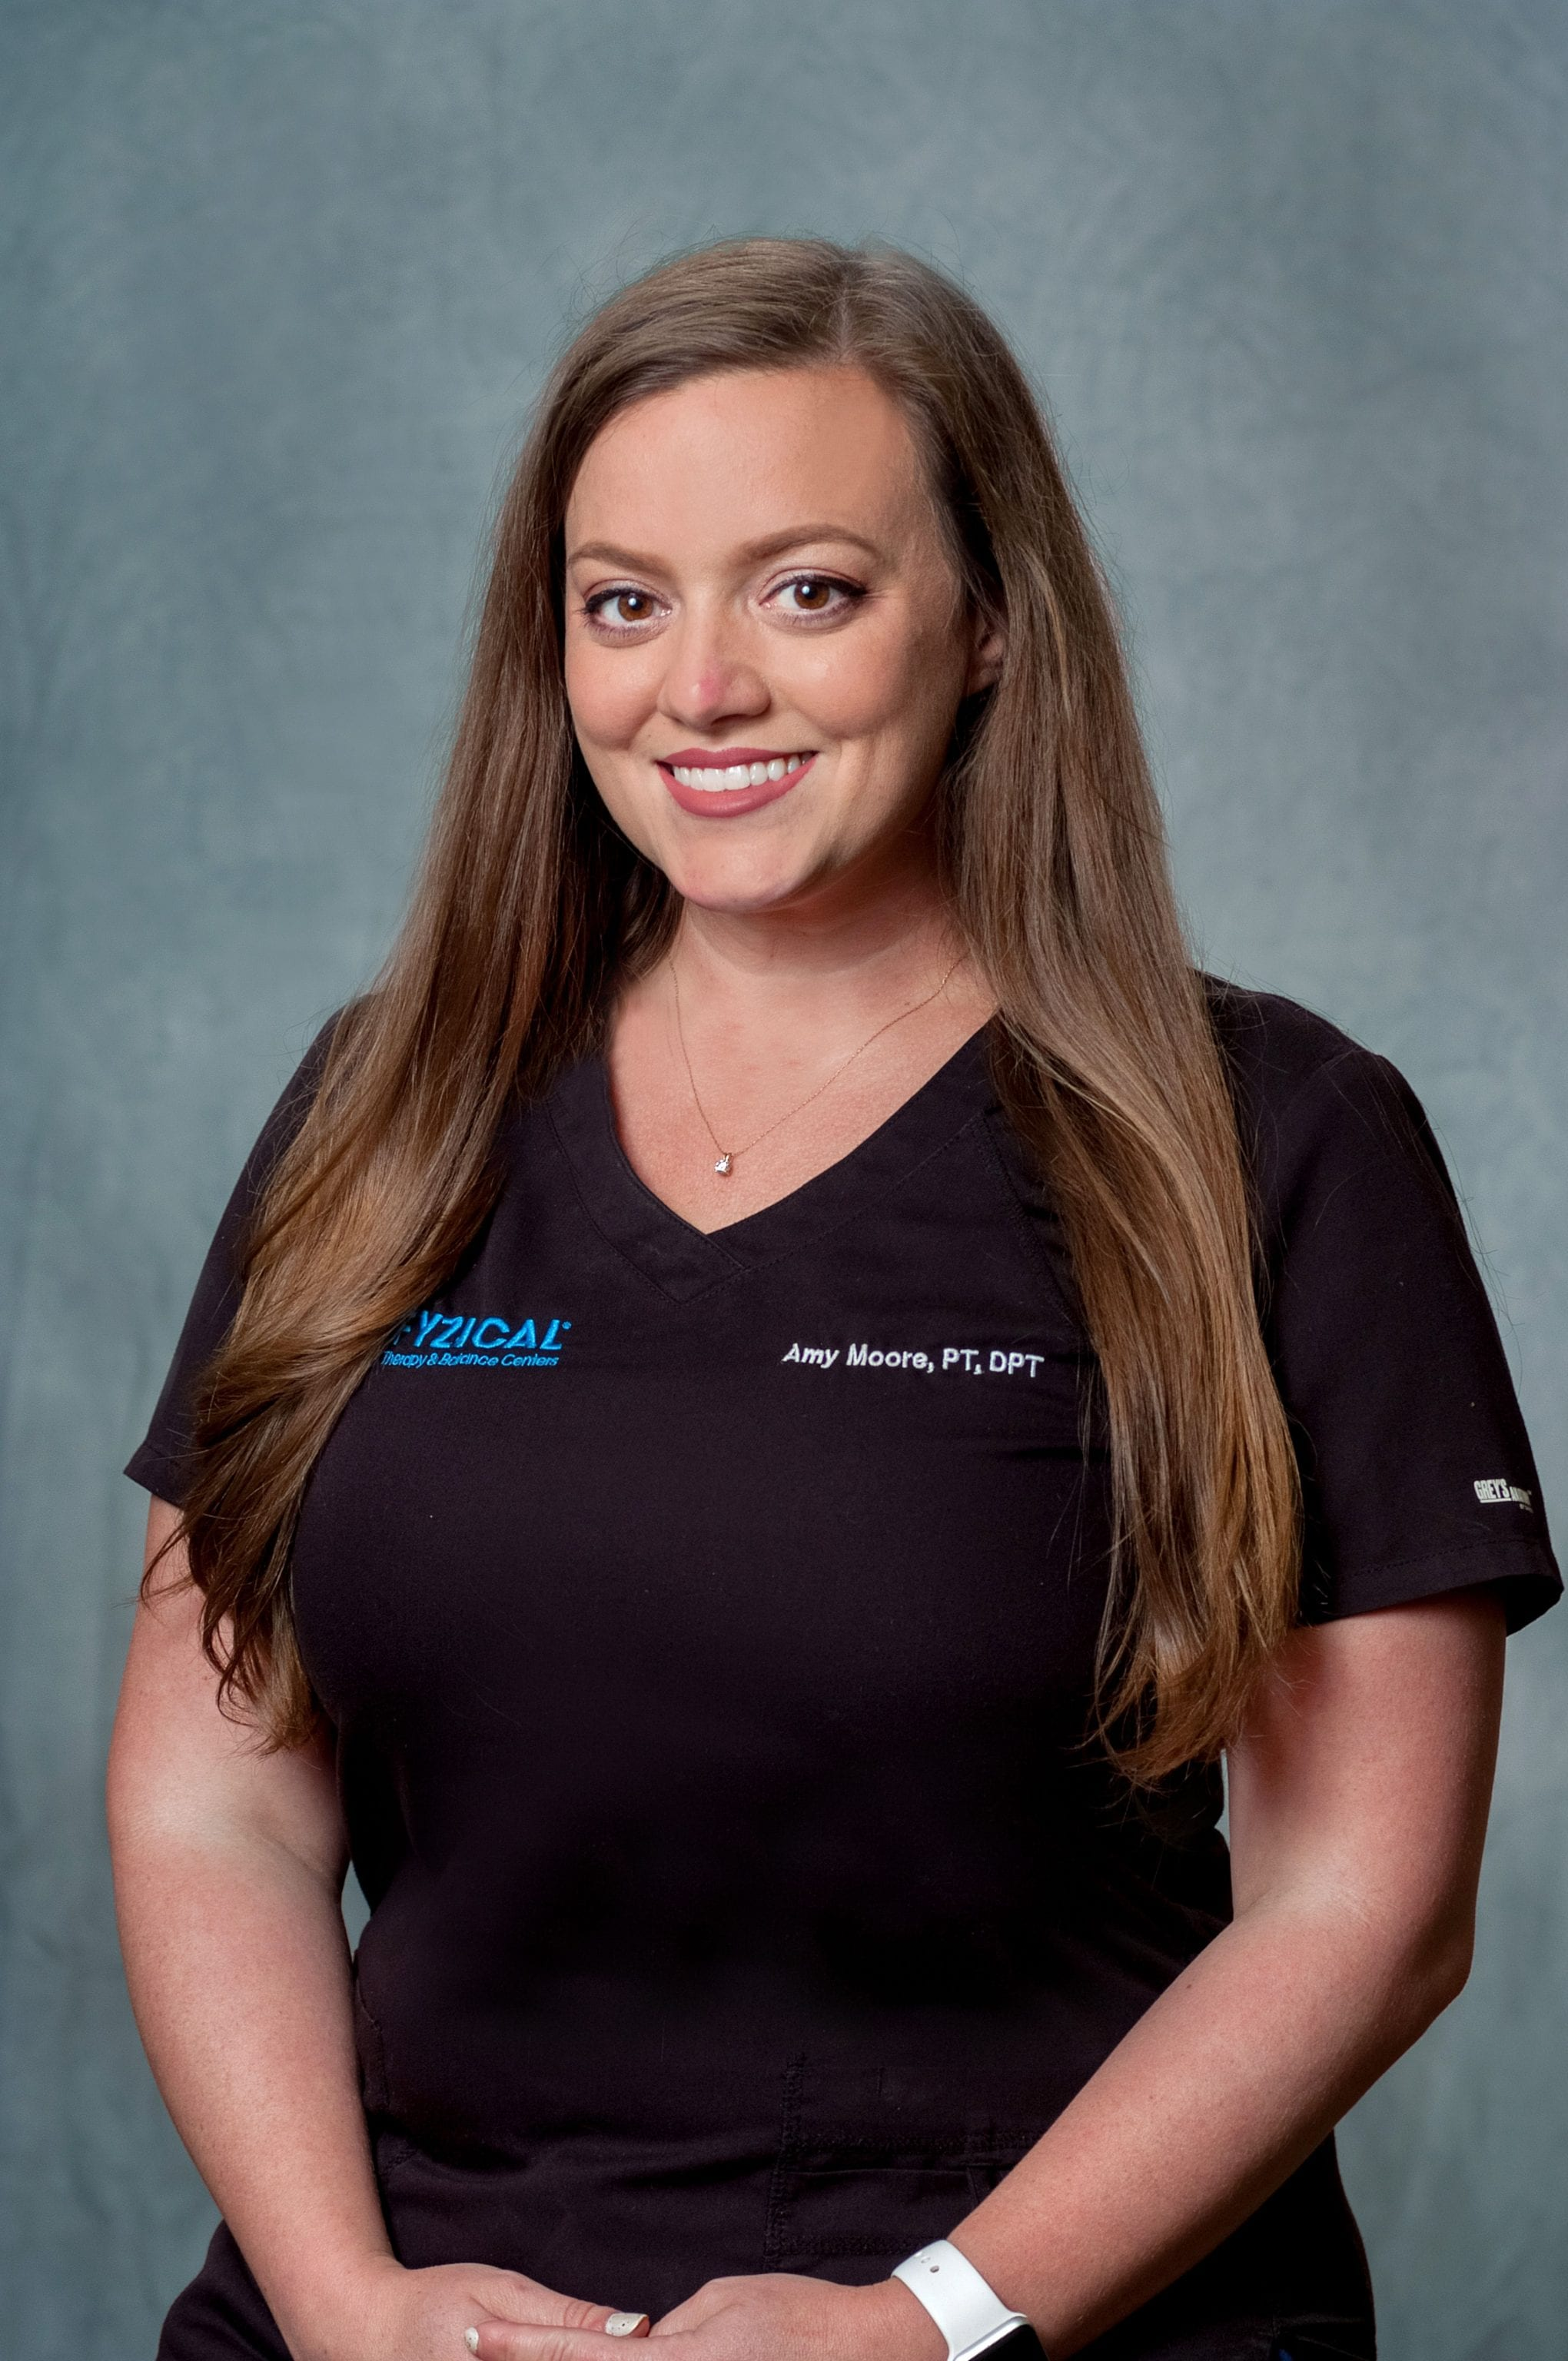 Amy Moore, PT, DPT : Physical Therapist